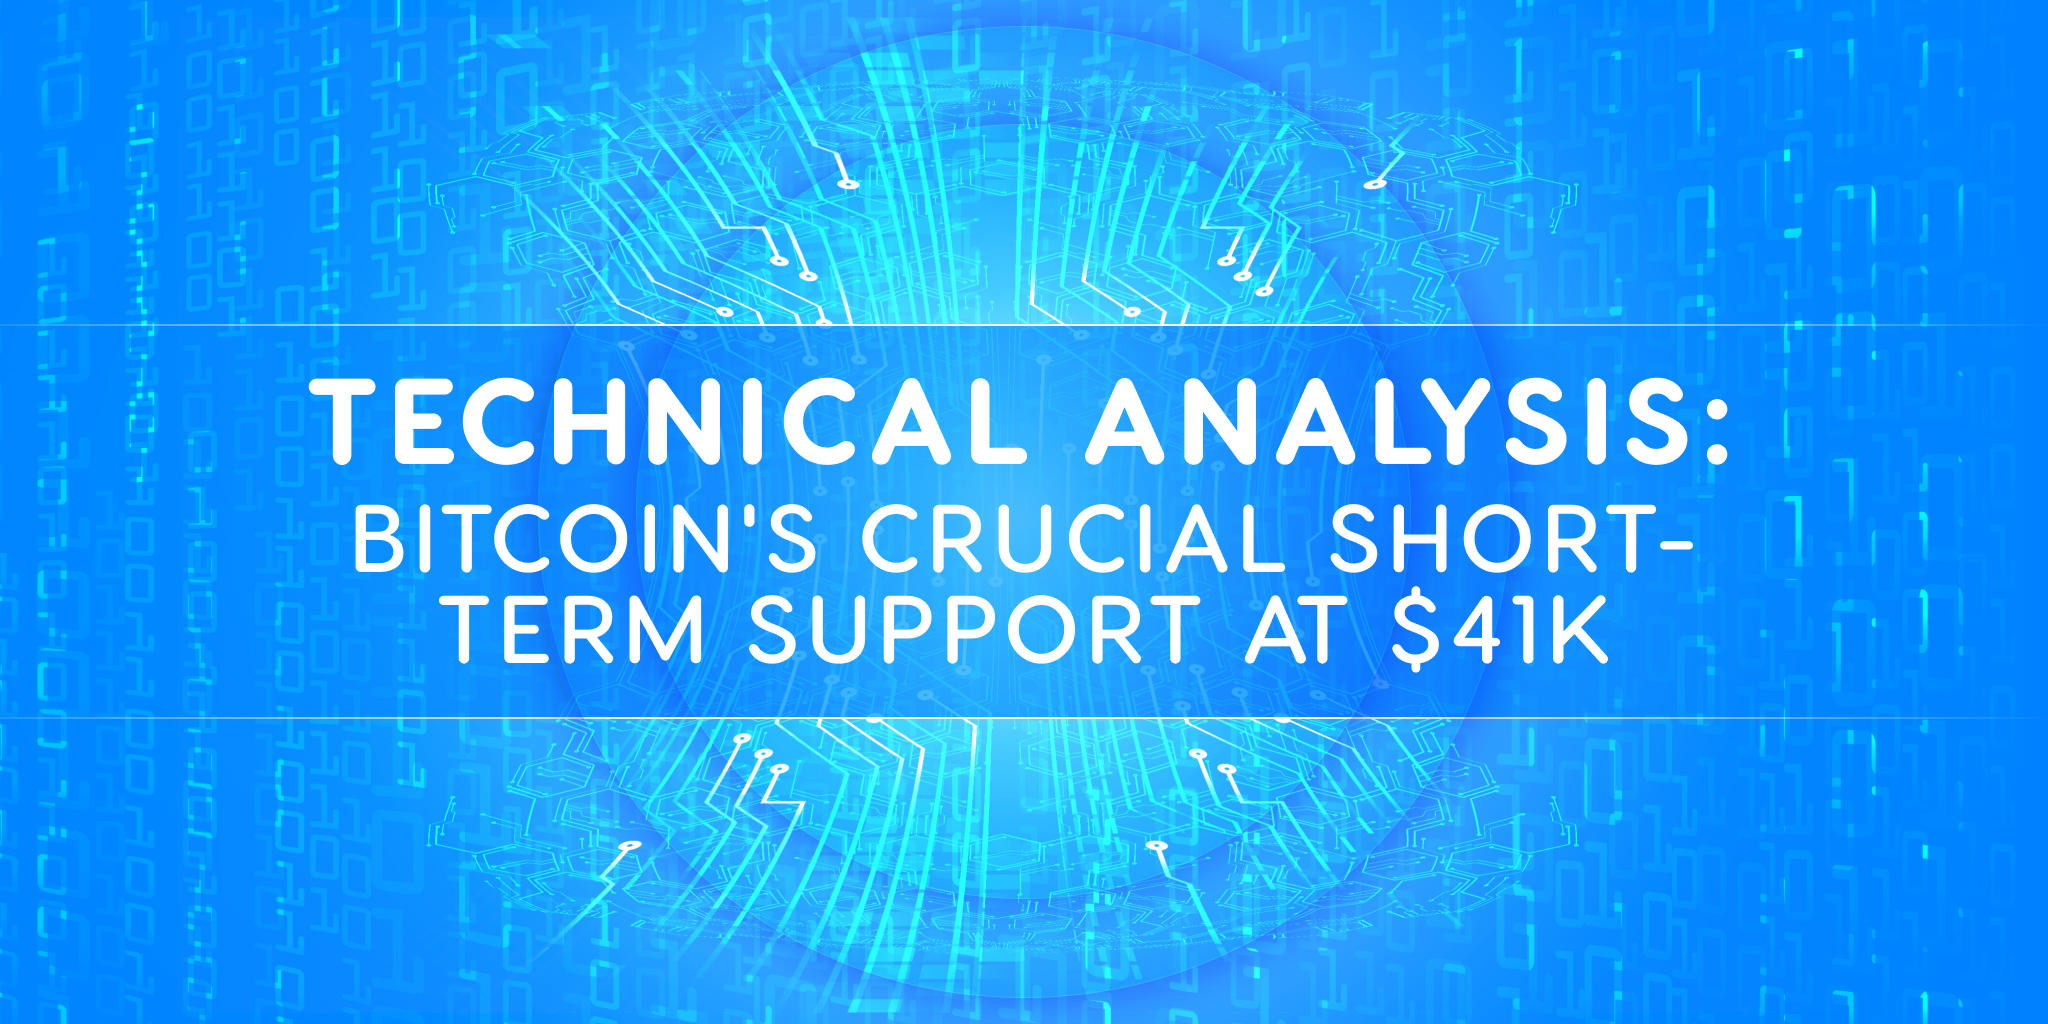 Technical analysis: Bitcoin's crucial short-term support at $41k